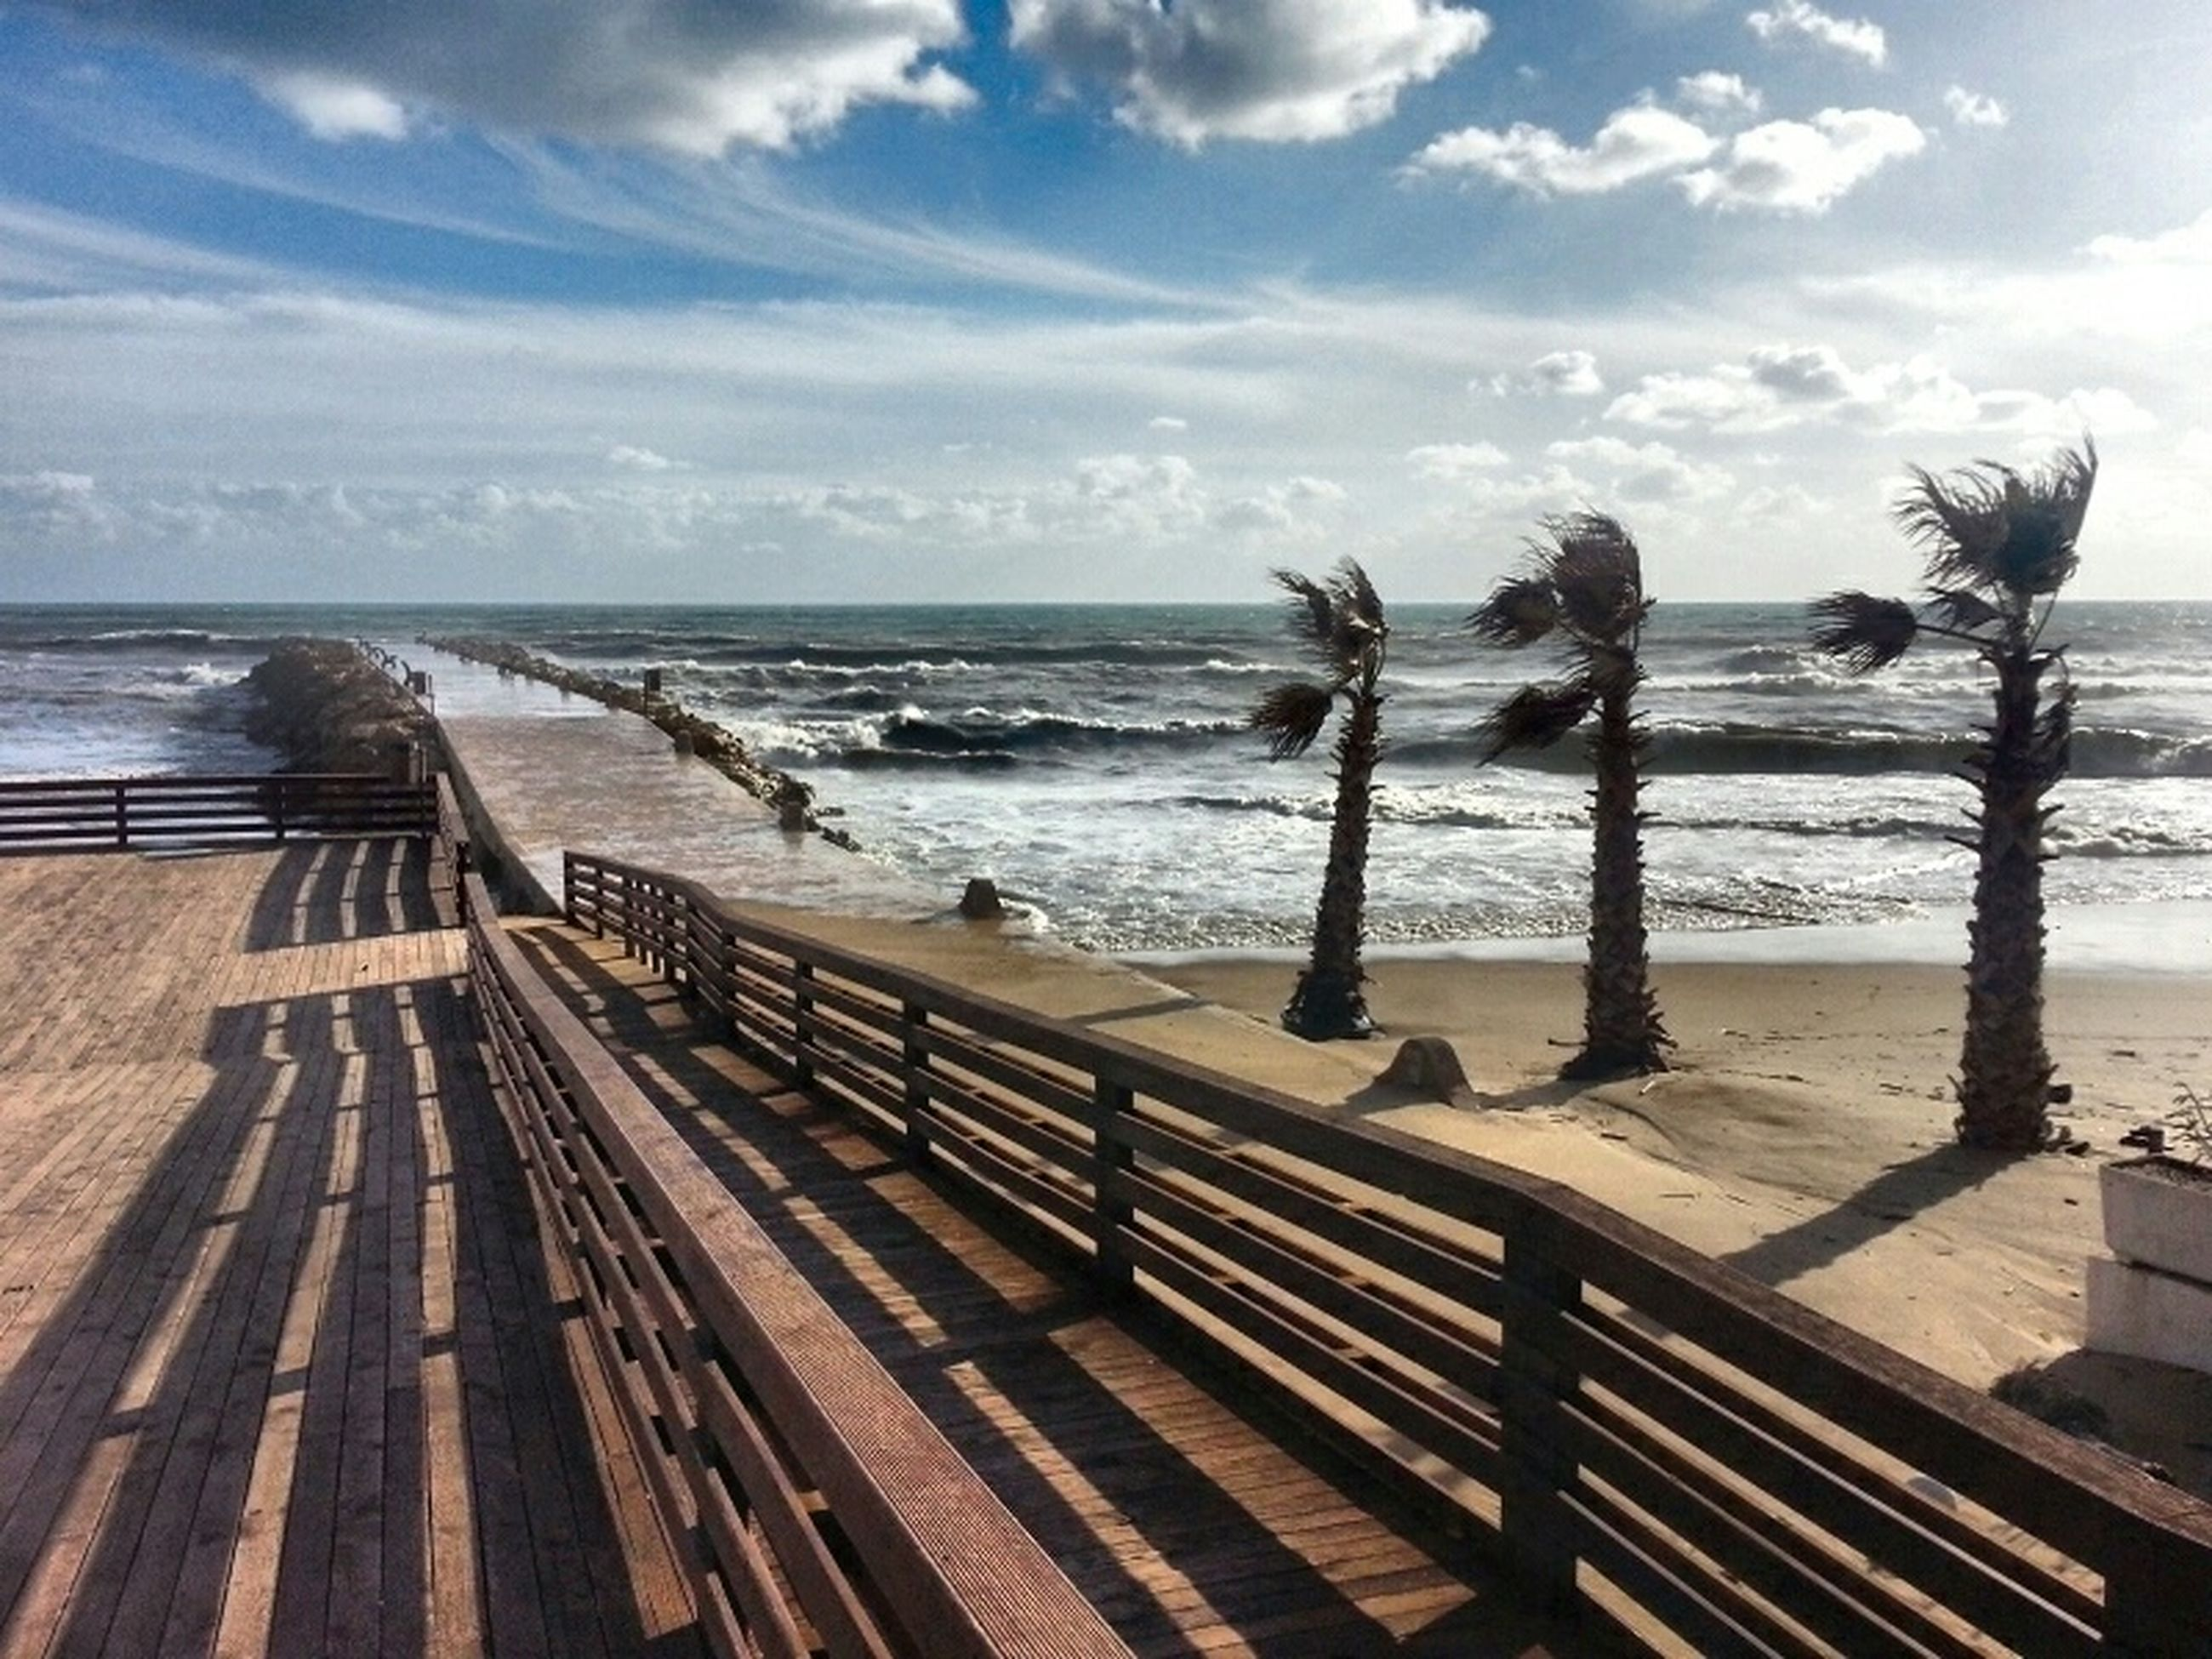 sea, sky, horizon over water, water, beach, cloud - sky, railing, tranquility, tranquil scene, shore, pier, wood - material, nature, scenics, cloud, beauty in nature, sand, the way forward, idyllic, cloudy